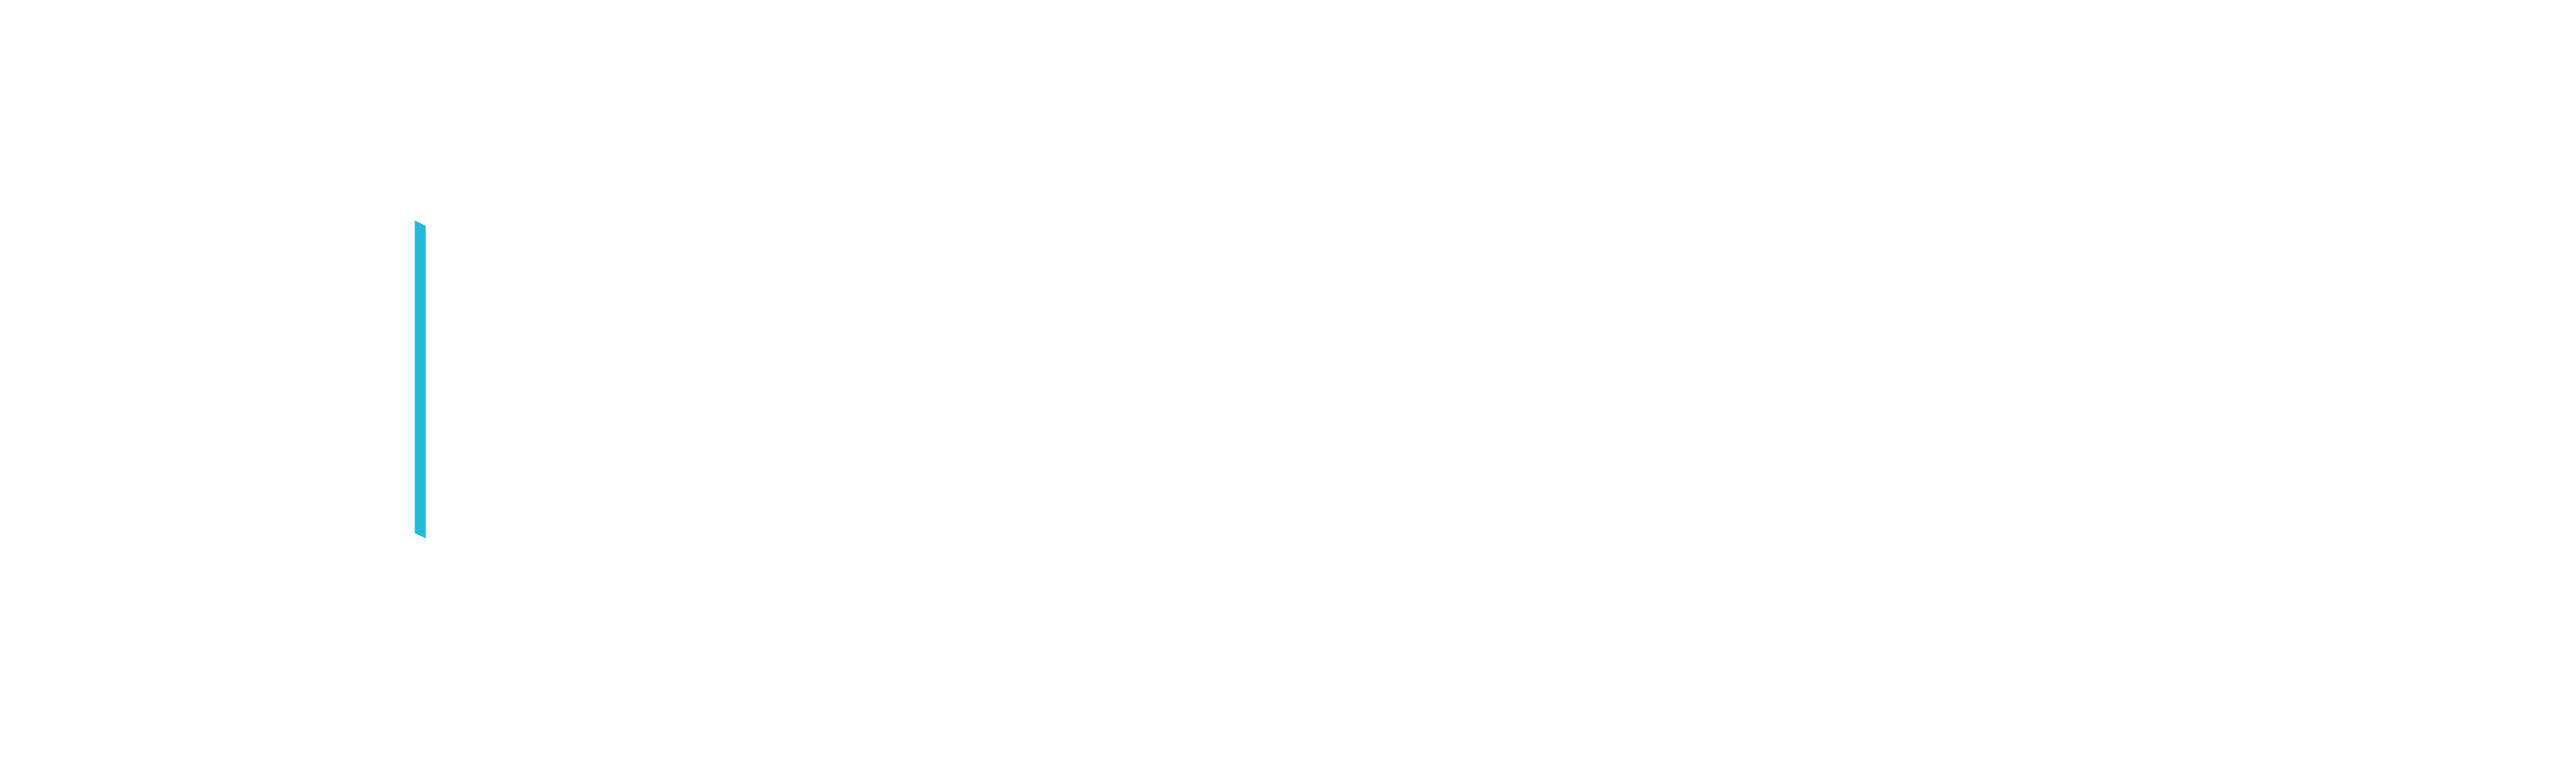 Faculty of Music and Fine Arts Education